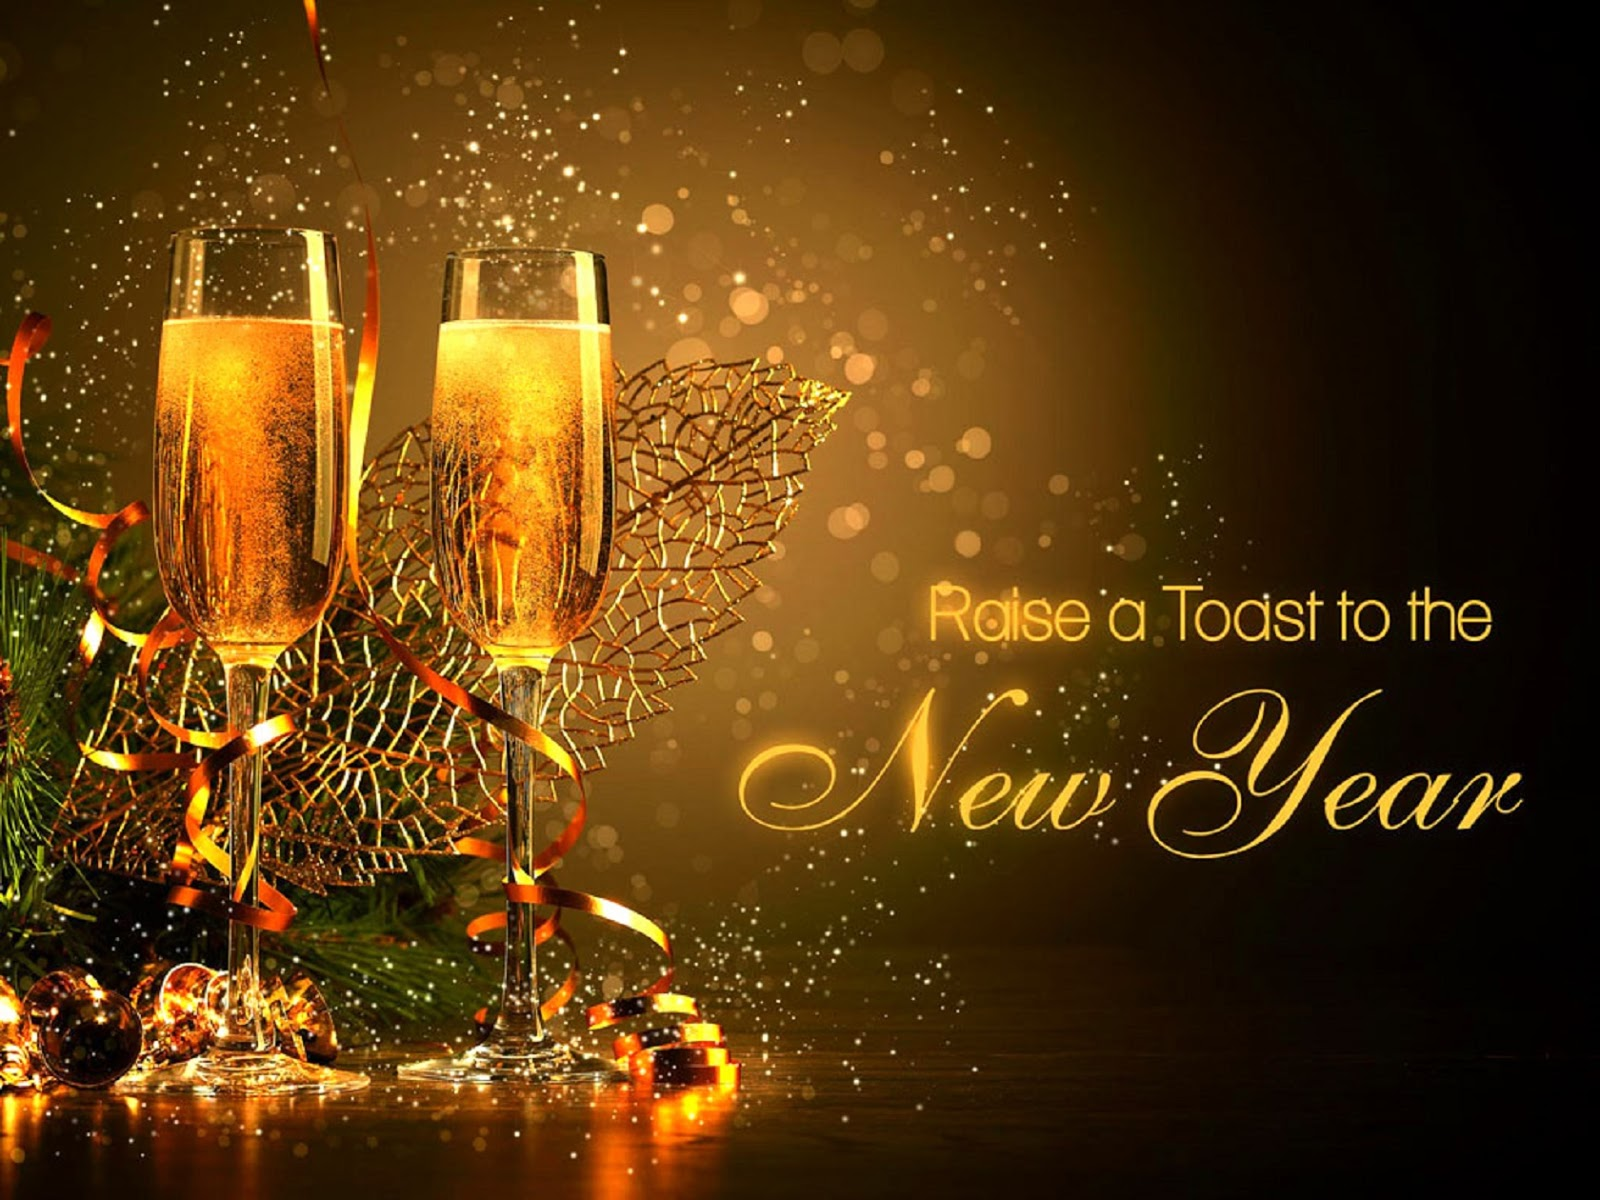 Happy New Year 2016 Mobile Wallpapers Smartphone Images